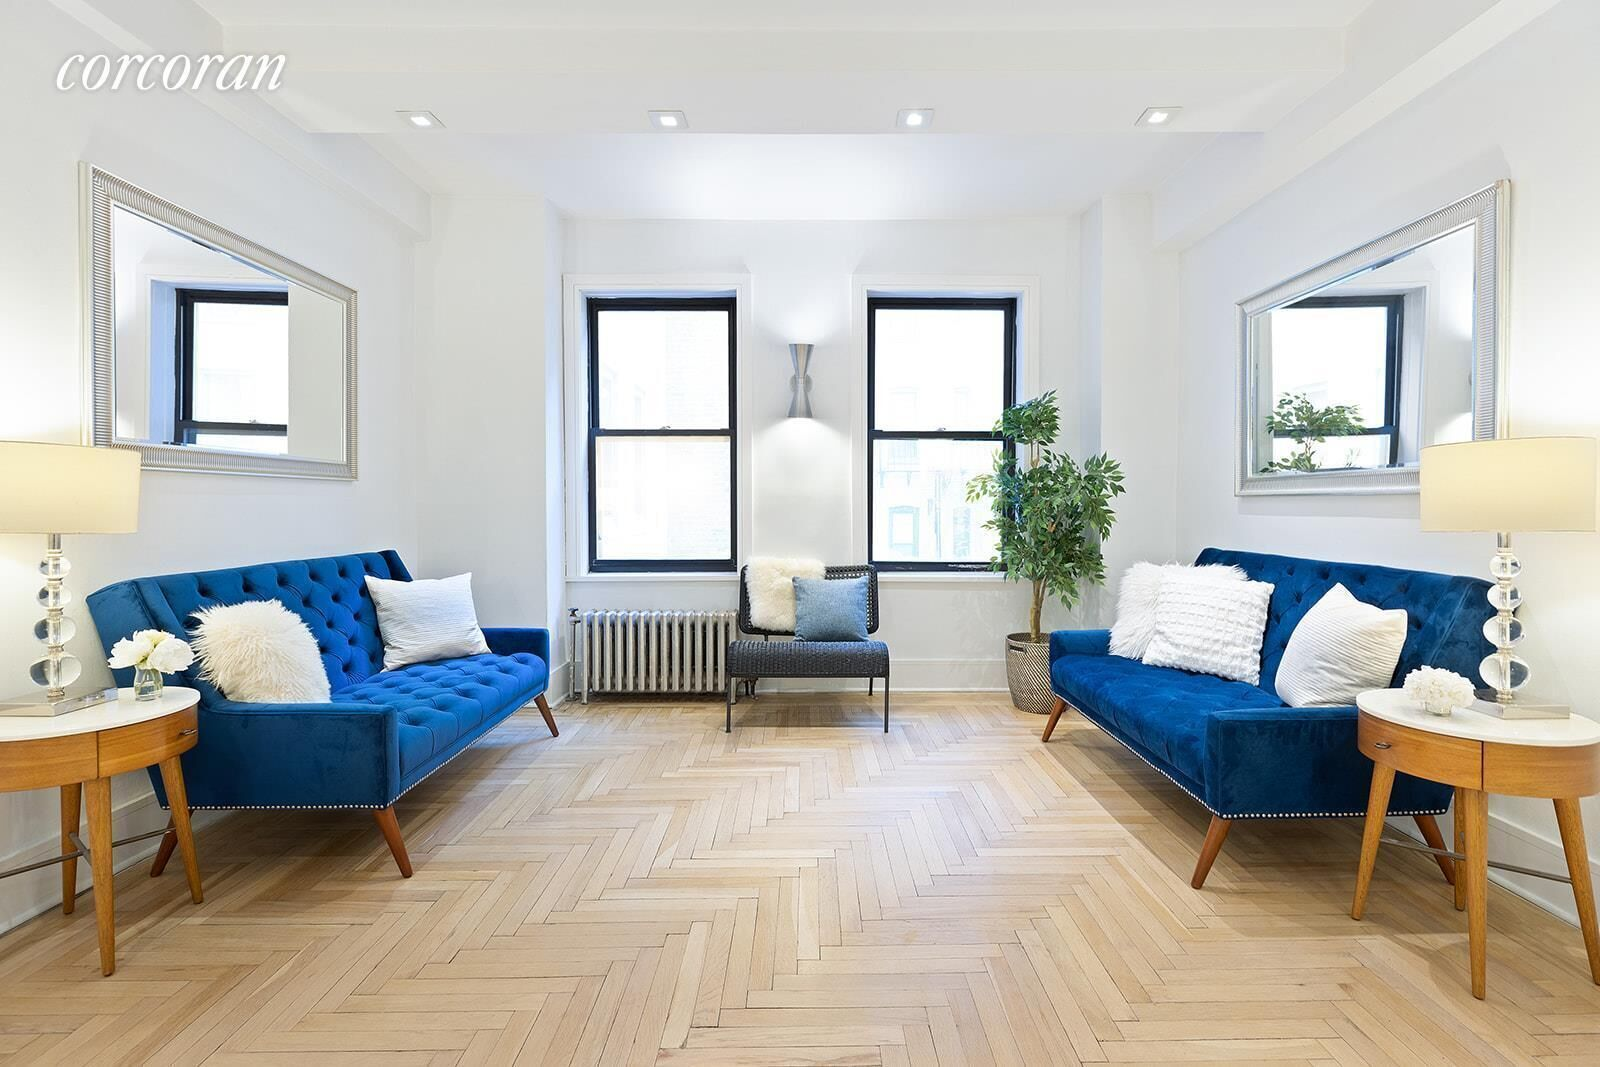 Apartment for sale at 135 Eastern Parkway, Apt 3B